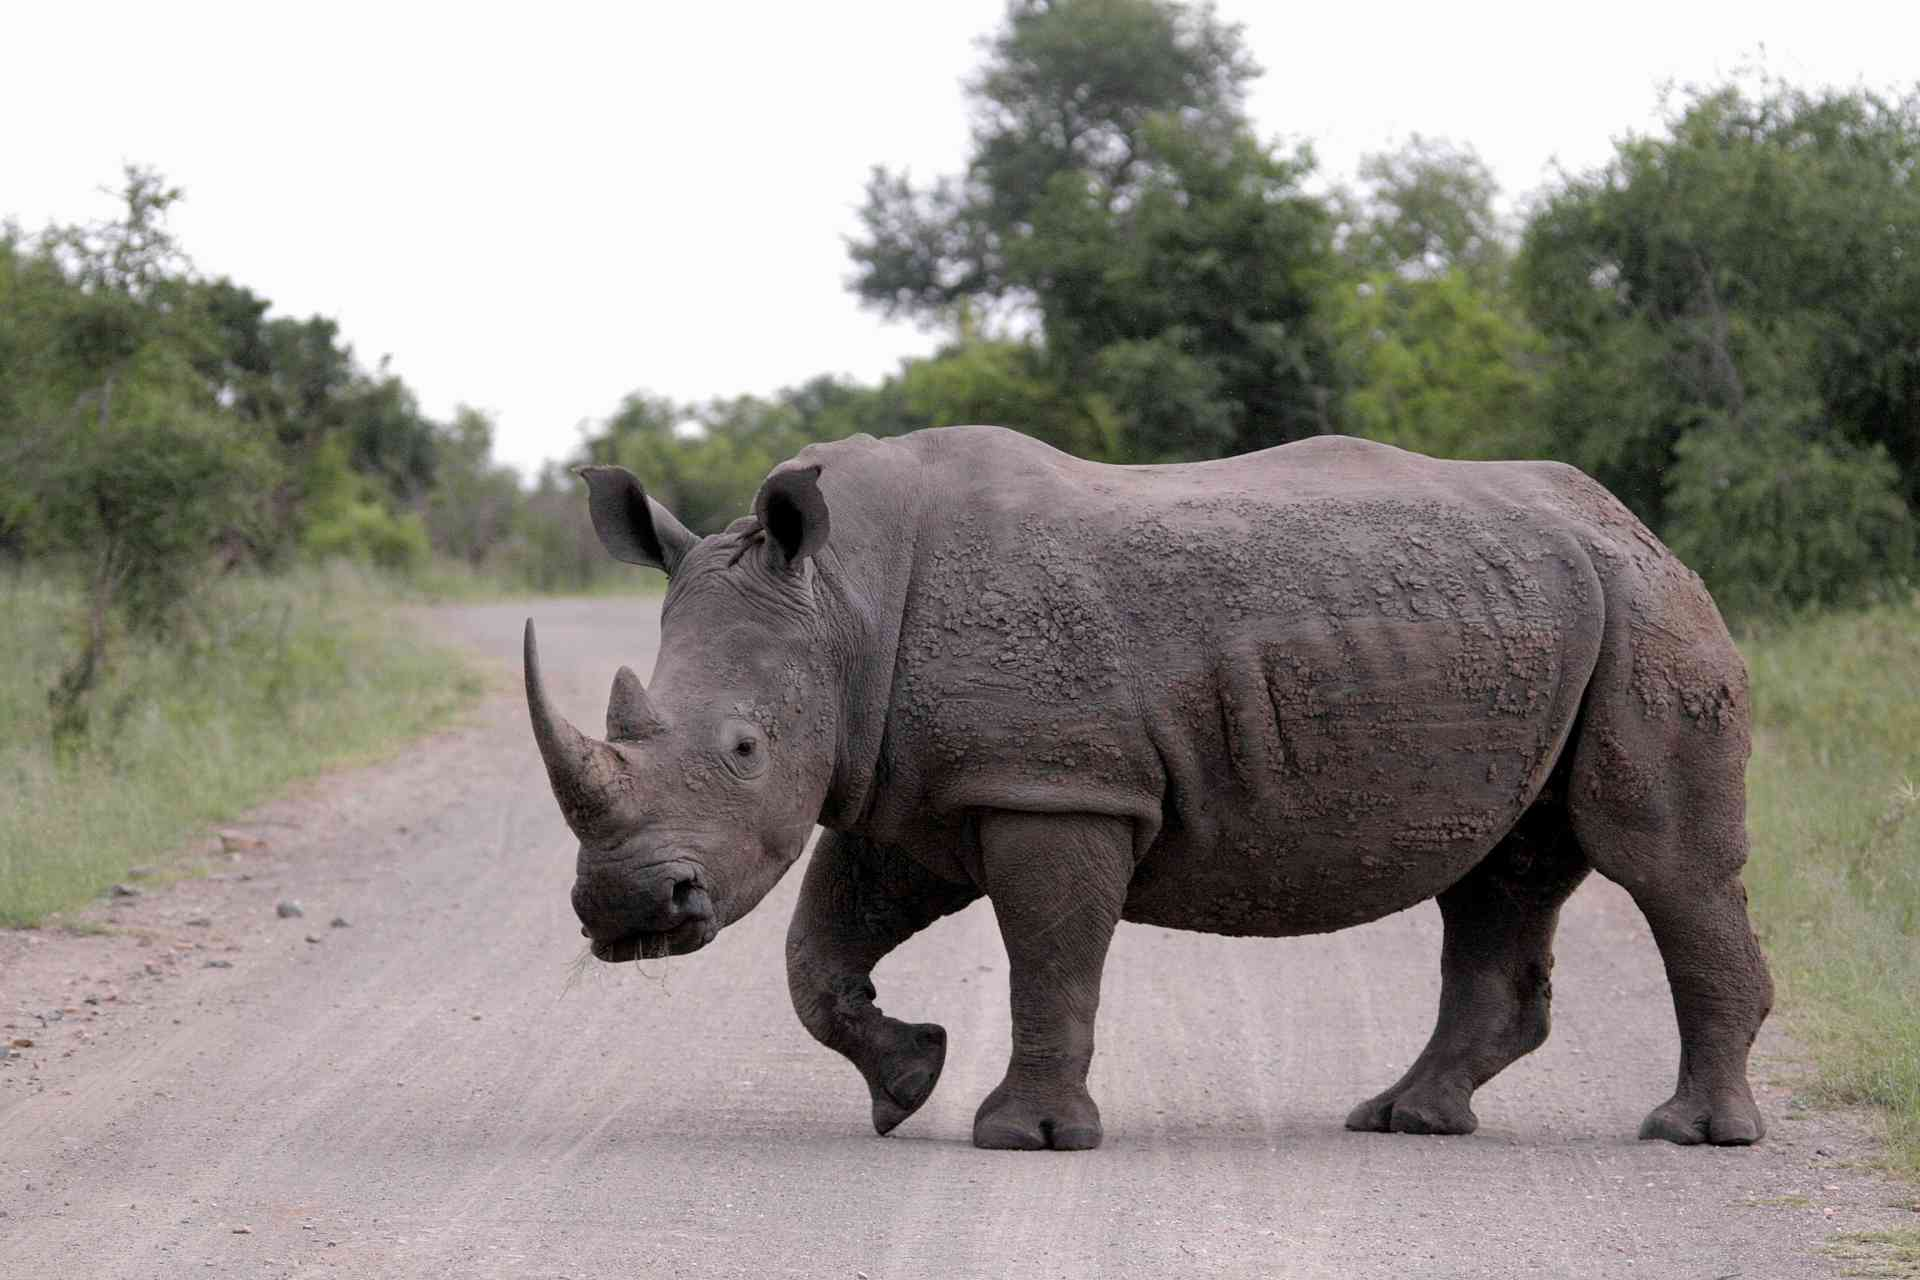 Rhino in Kruger National Park, South Africa